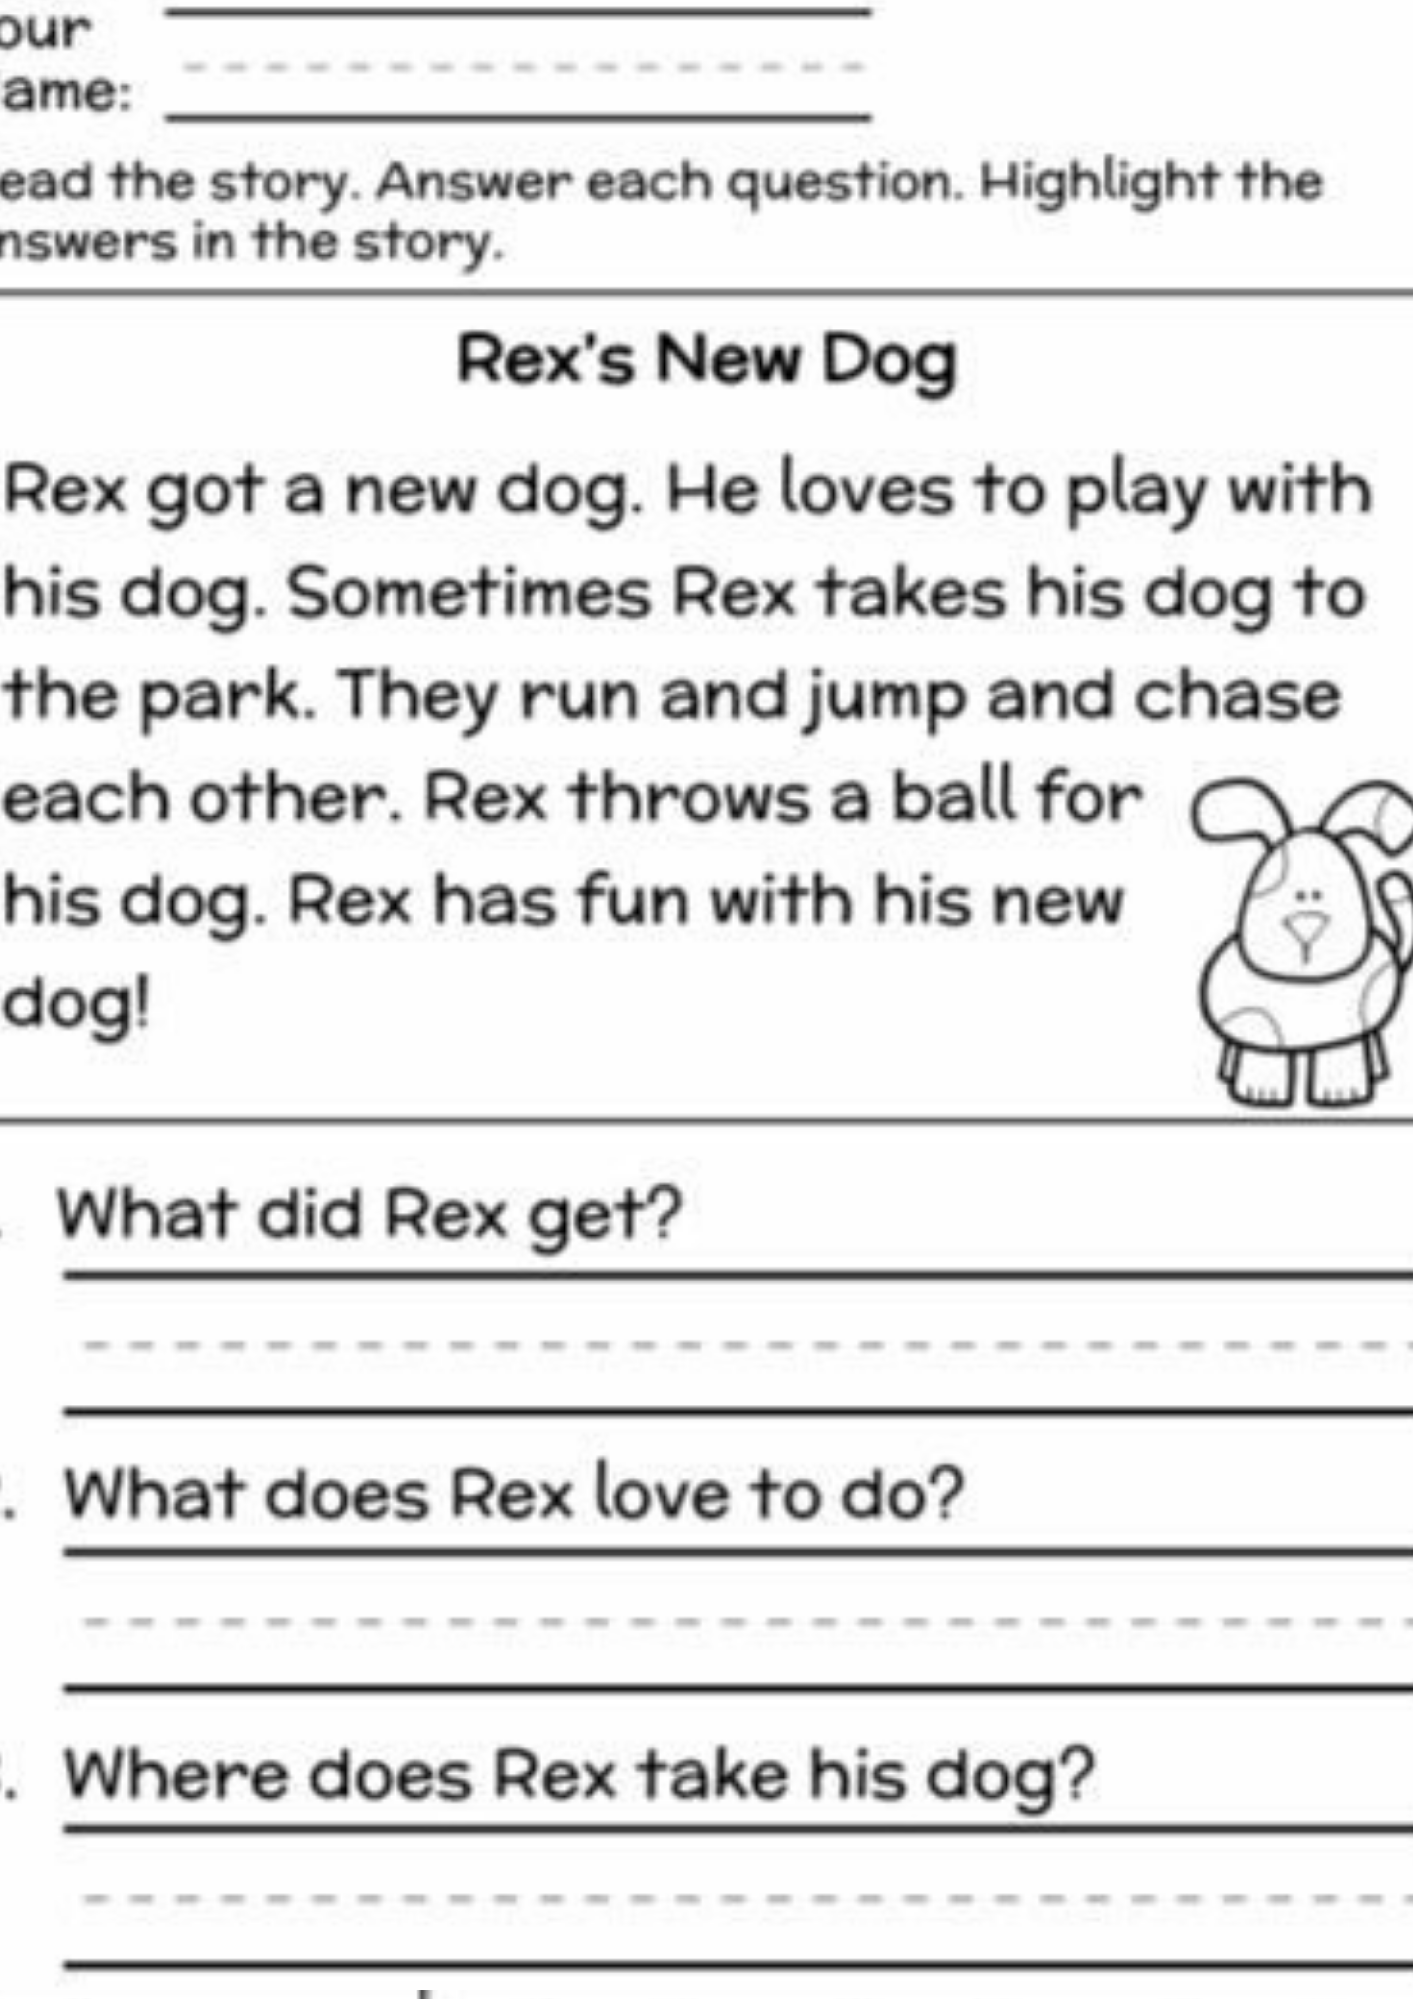 Free Printables For Teaching Preschoolers Literacy First Grade Reading Comprehension 1st Grade Reading Worksheets 2nd Grade Reading Comprehension [ 1999 x 1413 Pixel ]